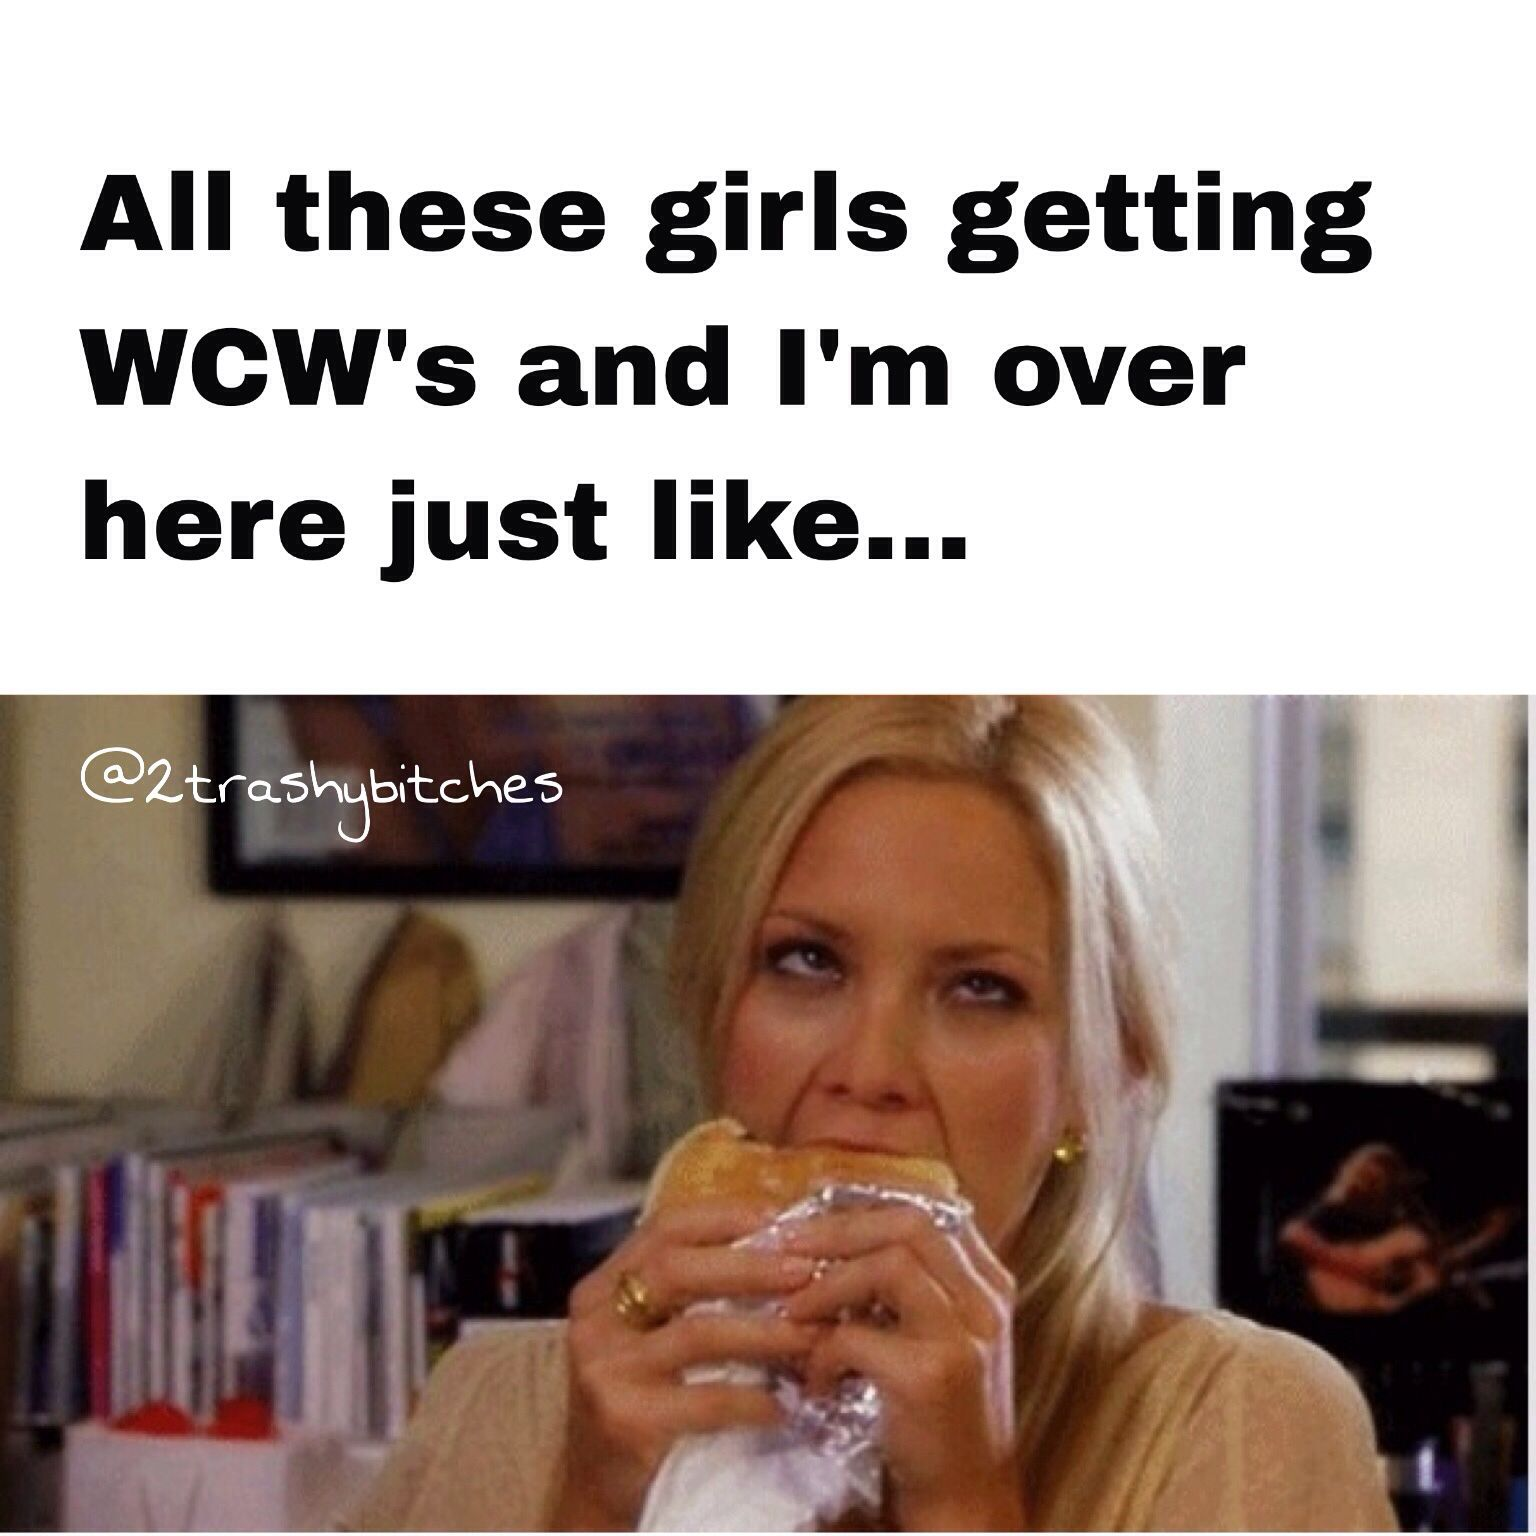 Wcw, woman crush Wednesday, funny | Woman crush wednesday quotes, Women humor, Woman quotes